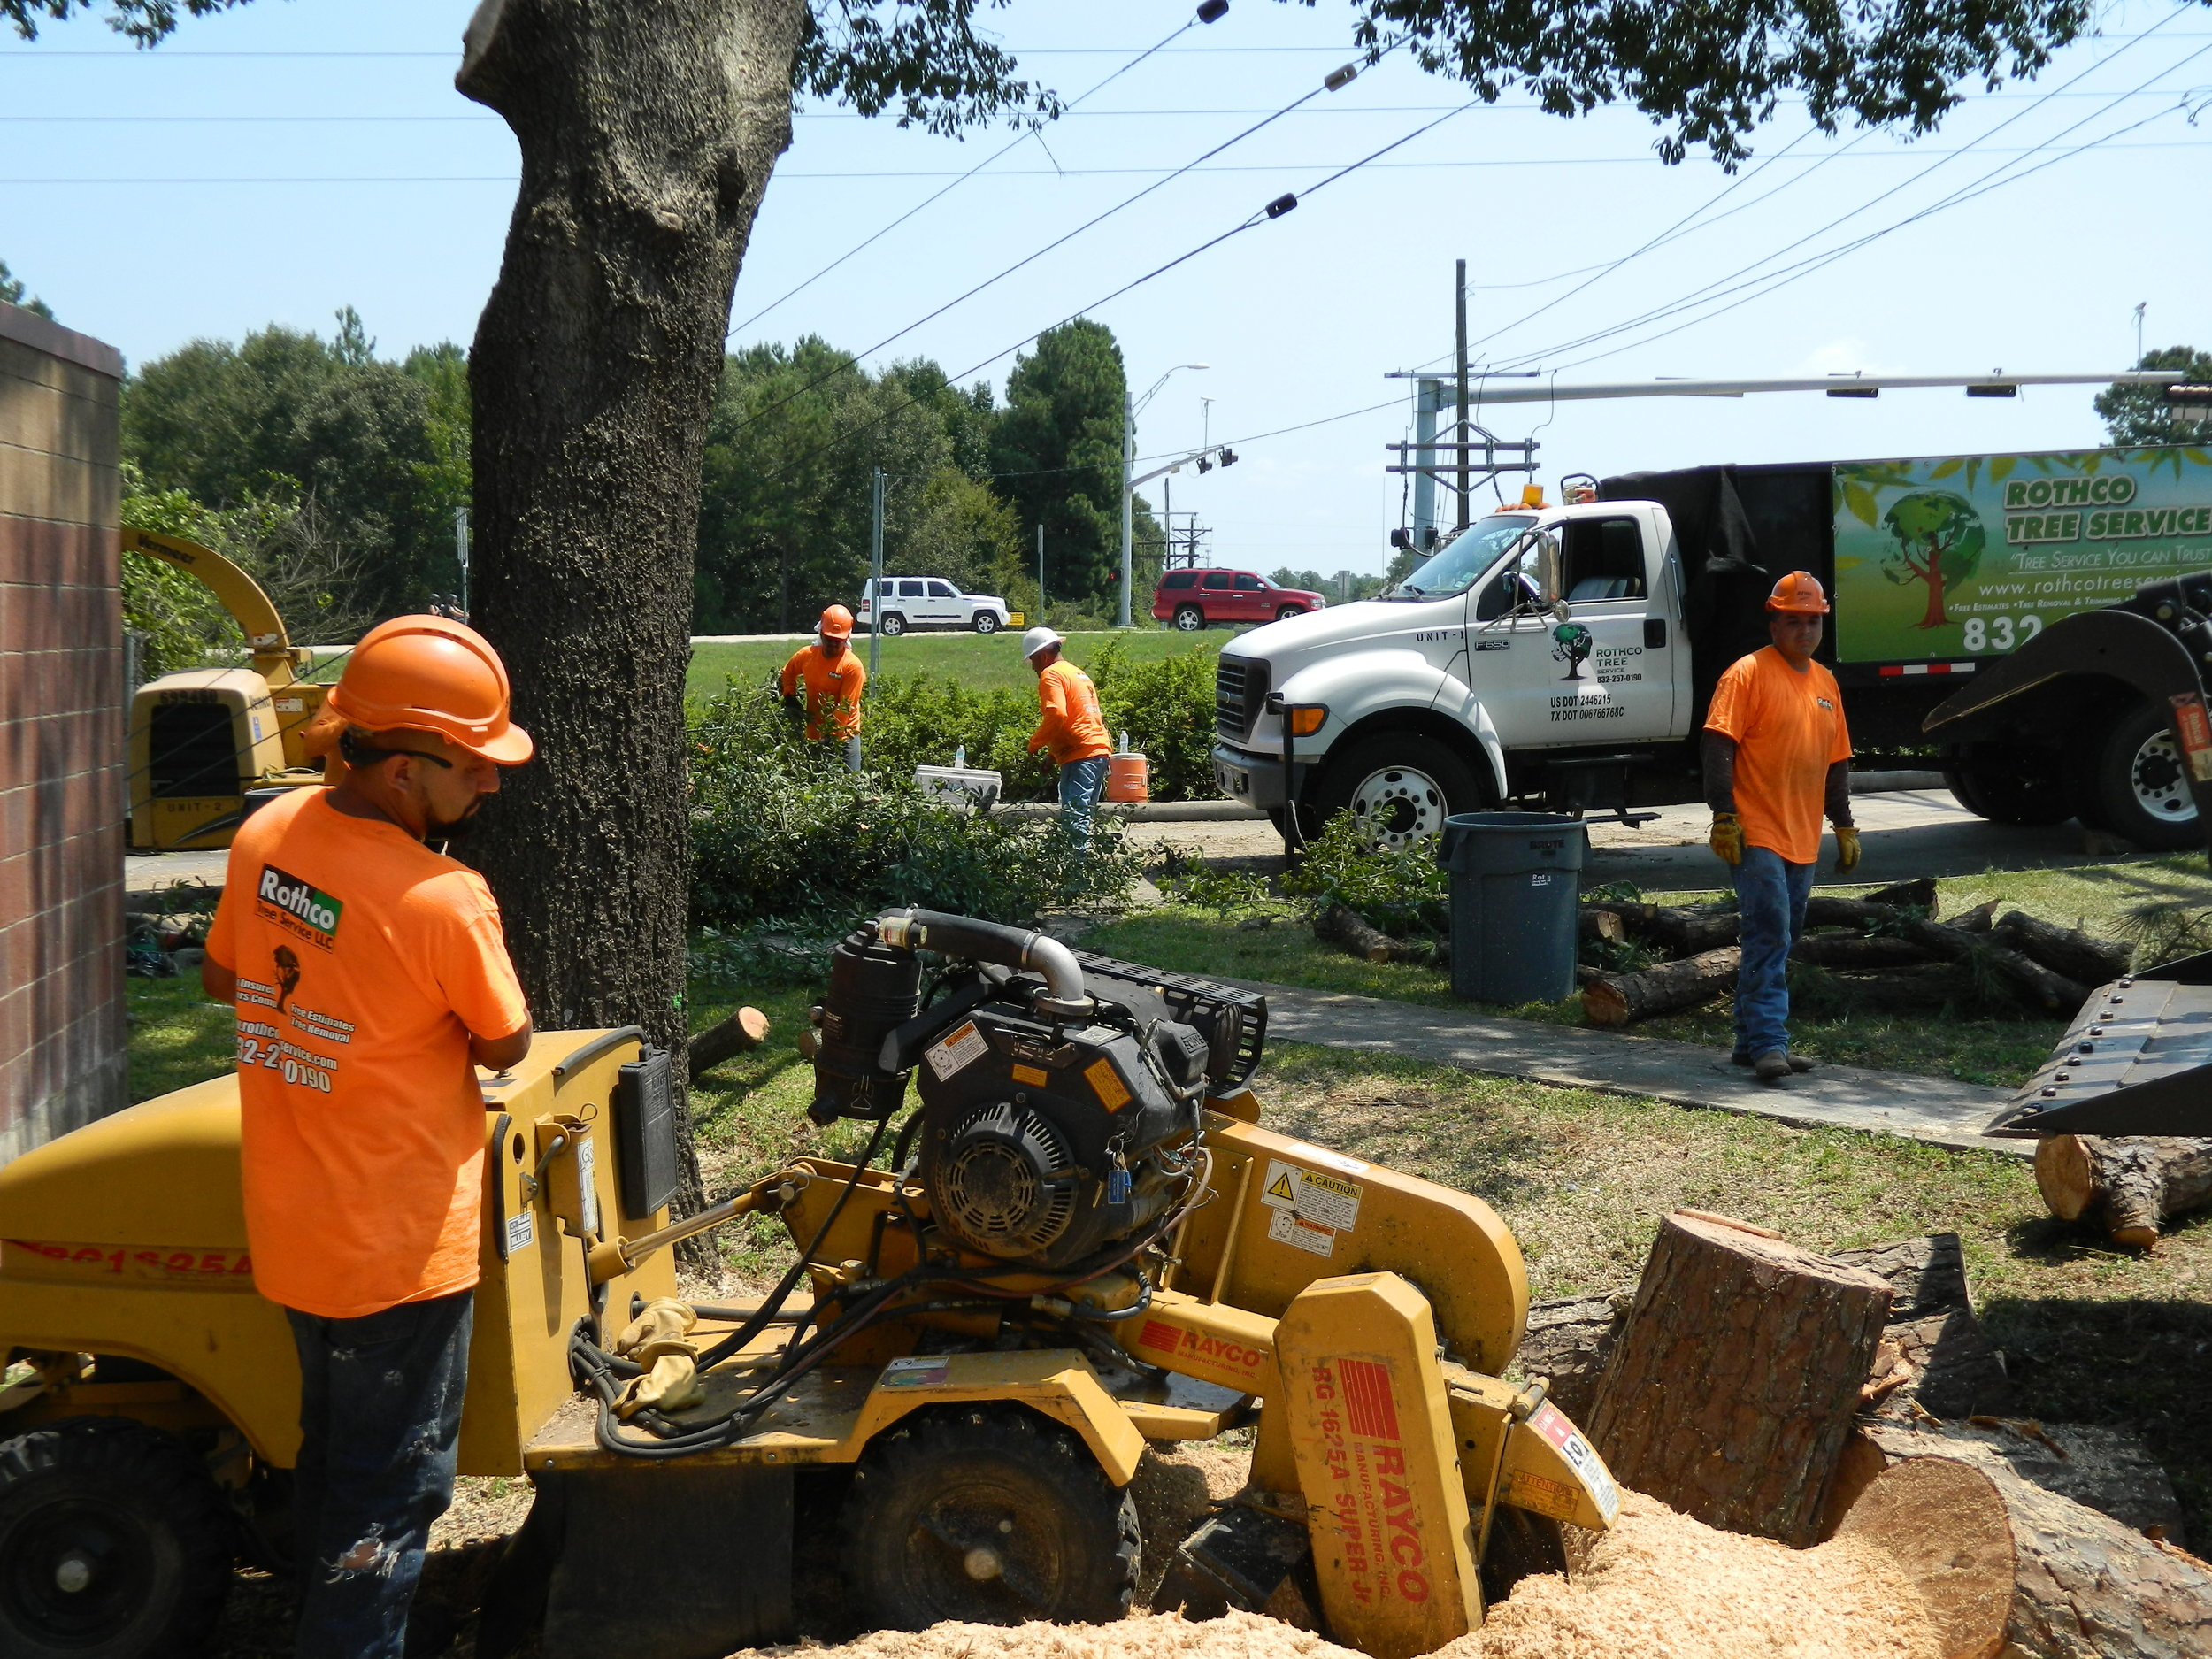 Rothco Tree Service - Prct 3 Fire station multiple tree removals and stump grindings -  Montgomery, TX